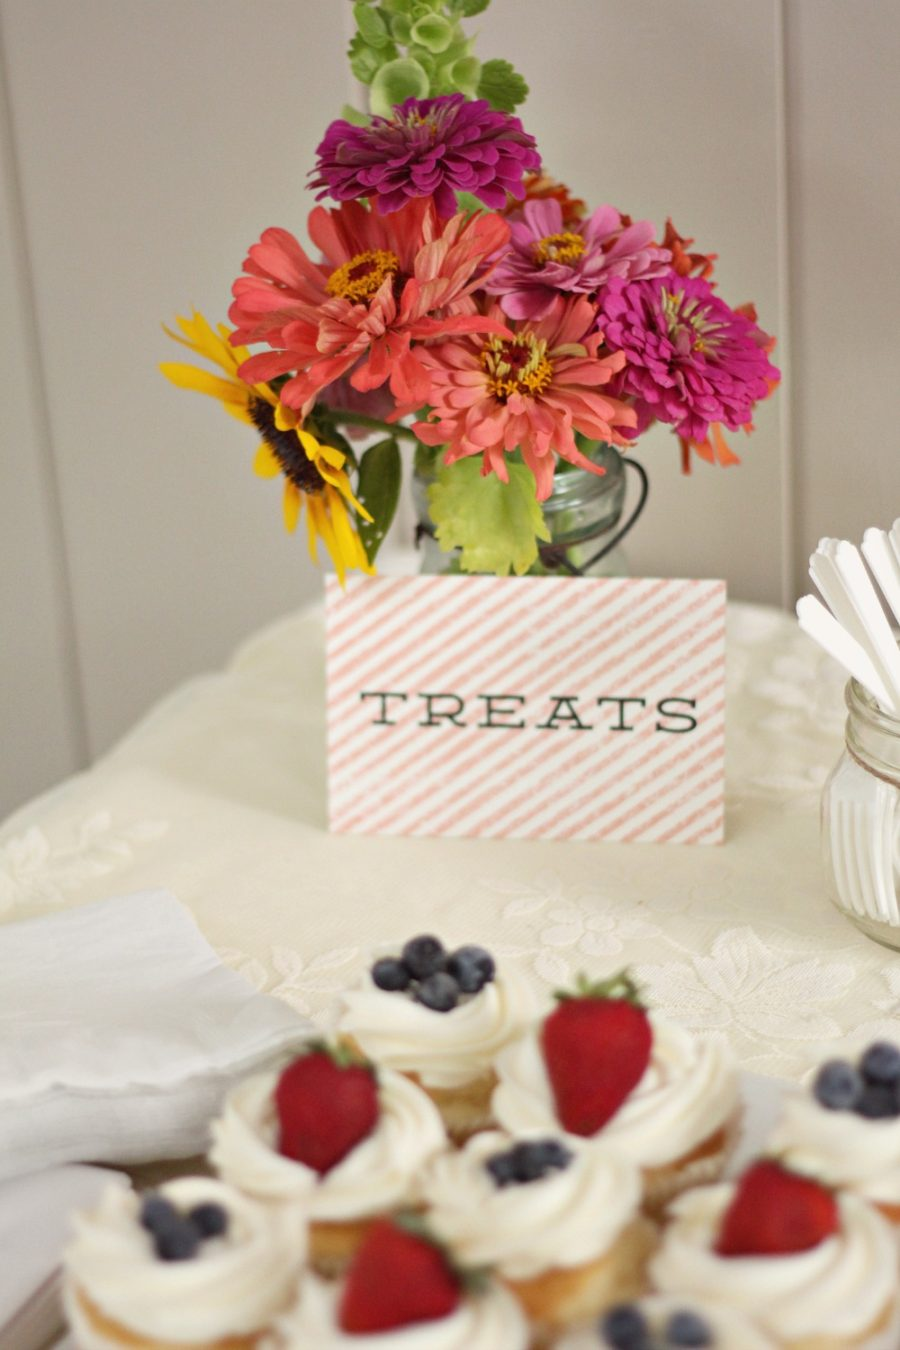 Treat sign from Minted